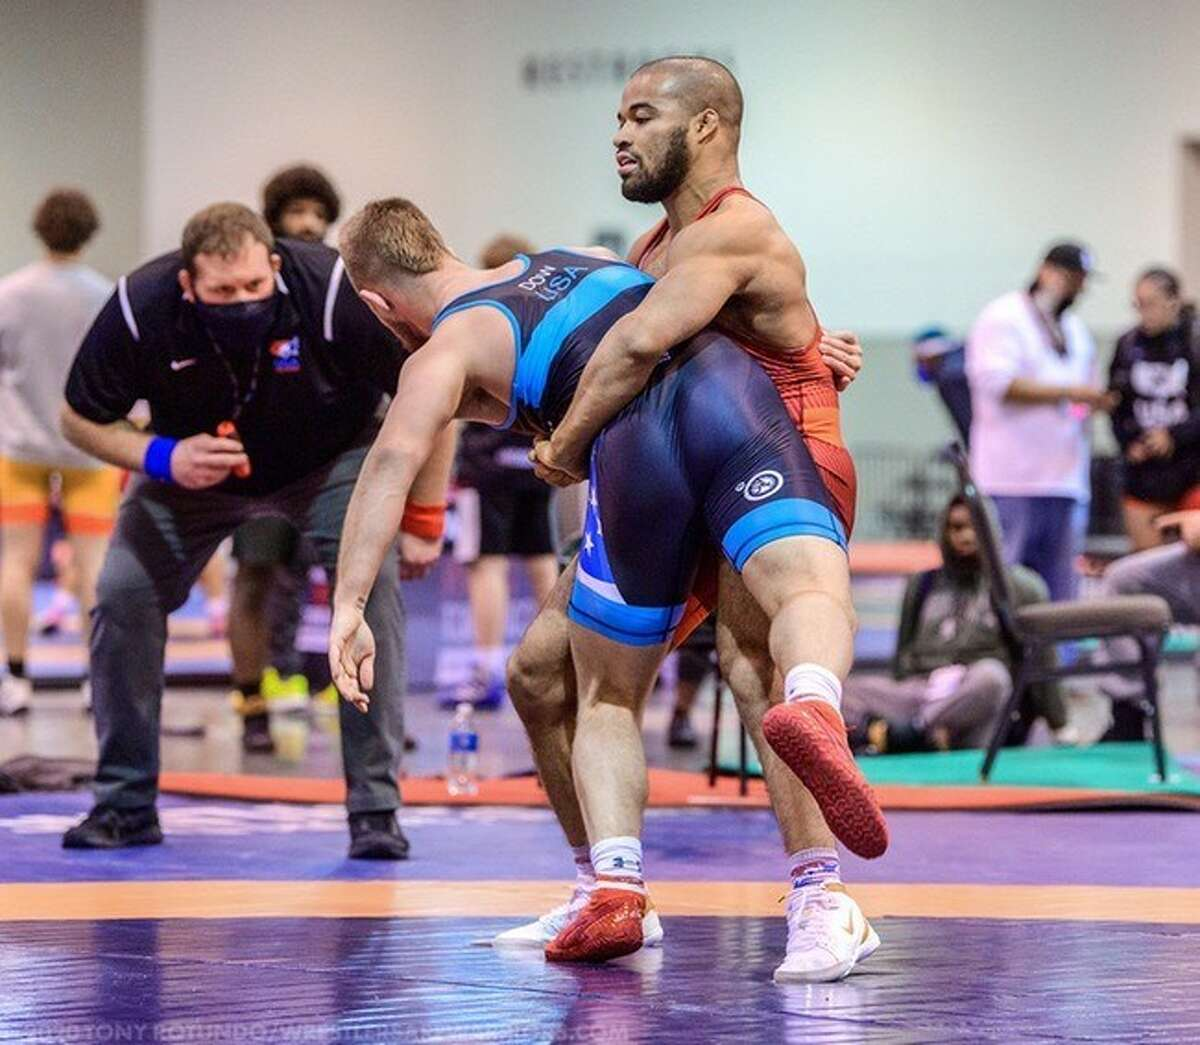 Shenendehowa graduate Jesse Porter, training at Northern Michigan University, lost in the second round at World Olympics Qualifier in Bulgaria. (Courtesy of Northern Michigan University)